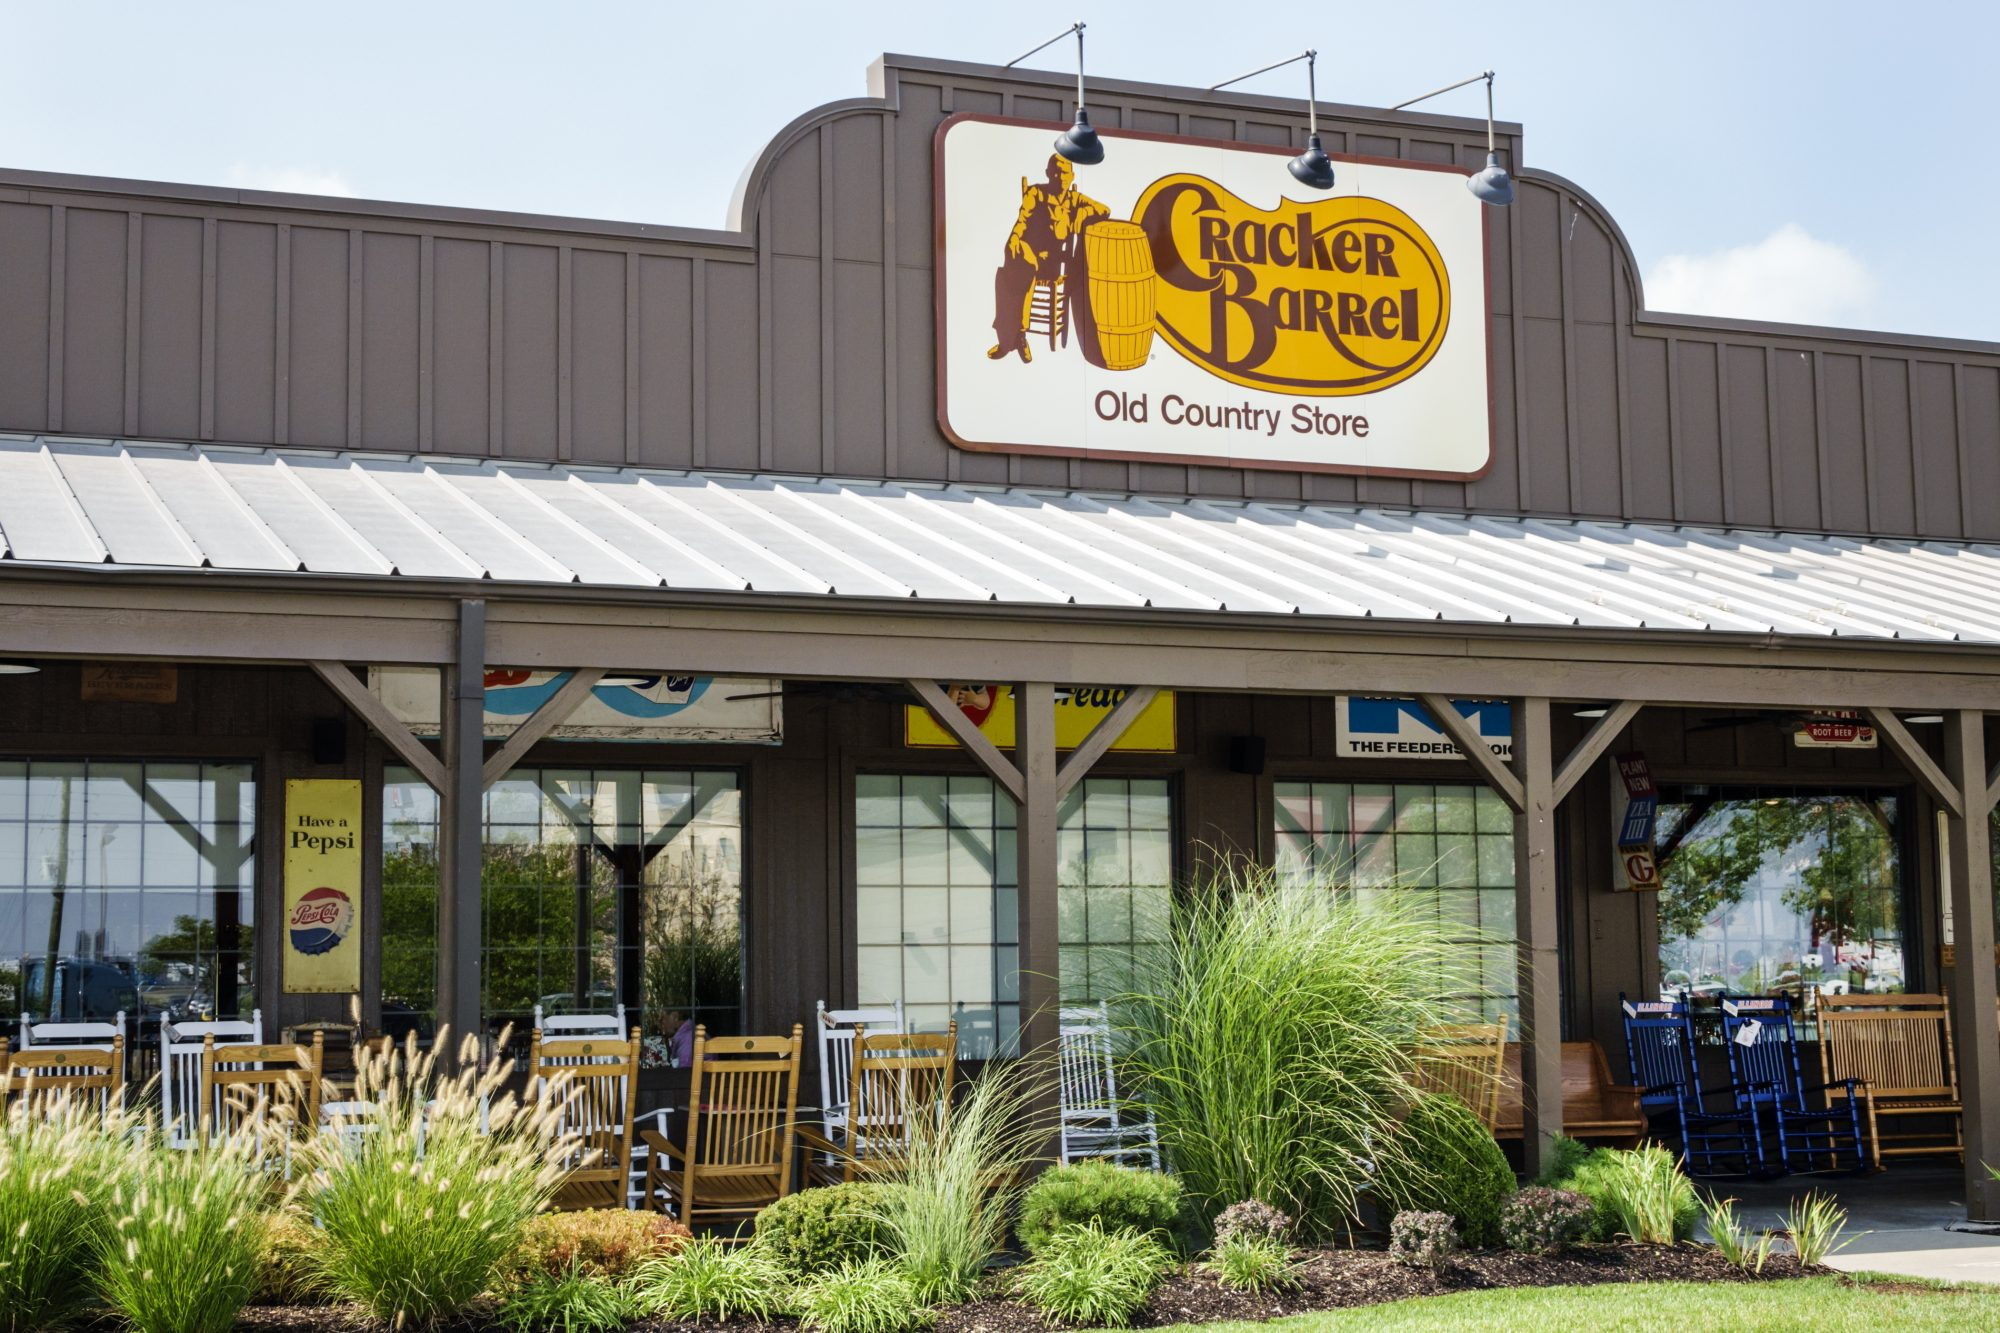 Cracker Barrel Getty 4/3/20